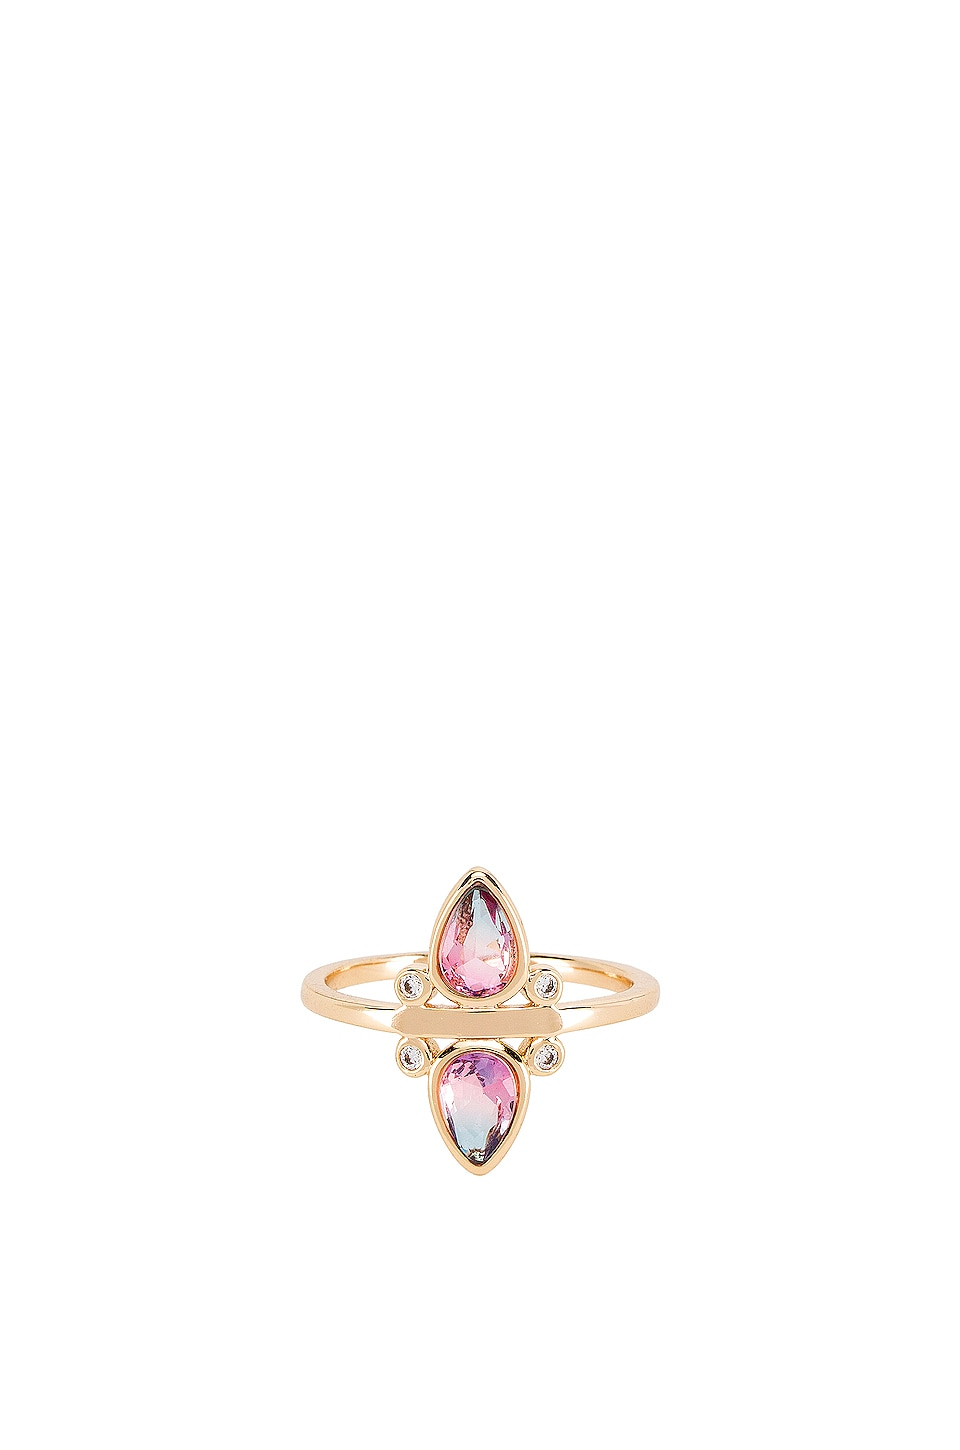 Elizabeth Stone Tourmaline Ring in Pink & Purple Tourmaline